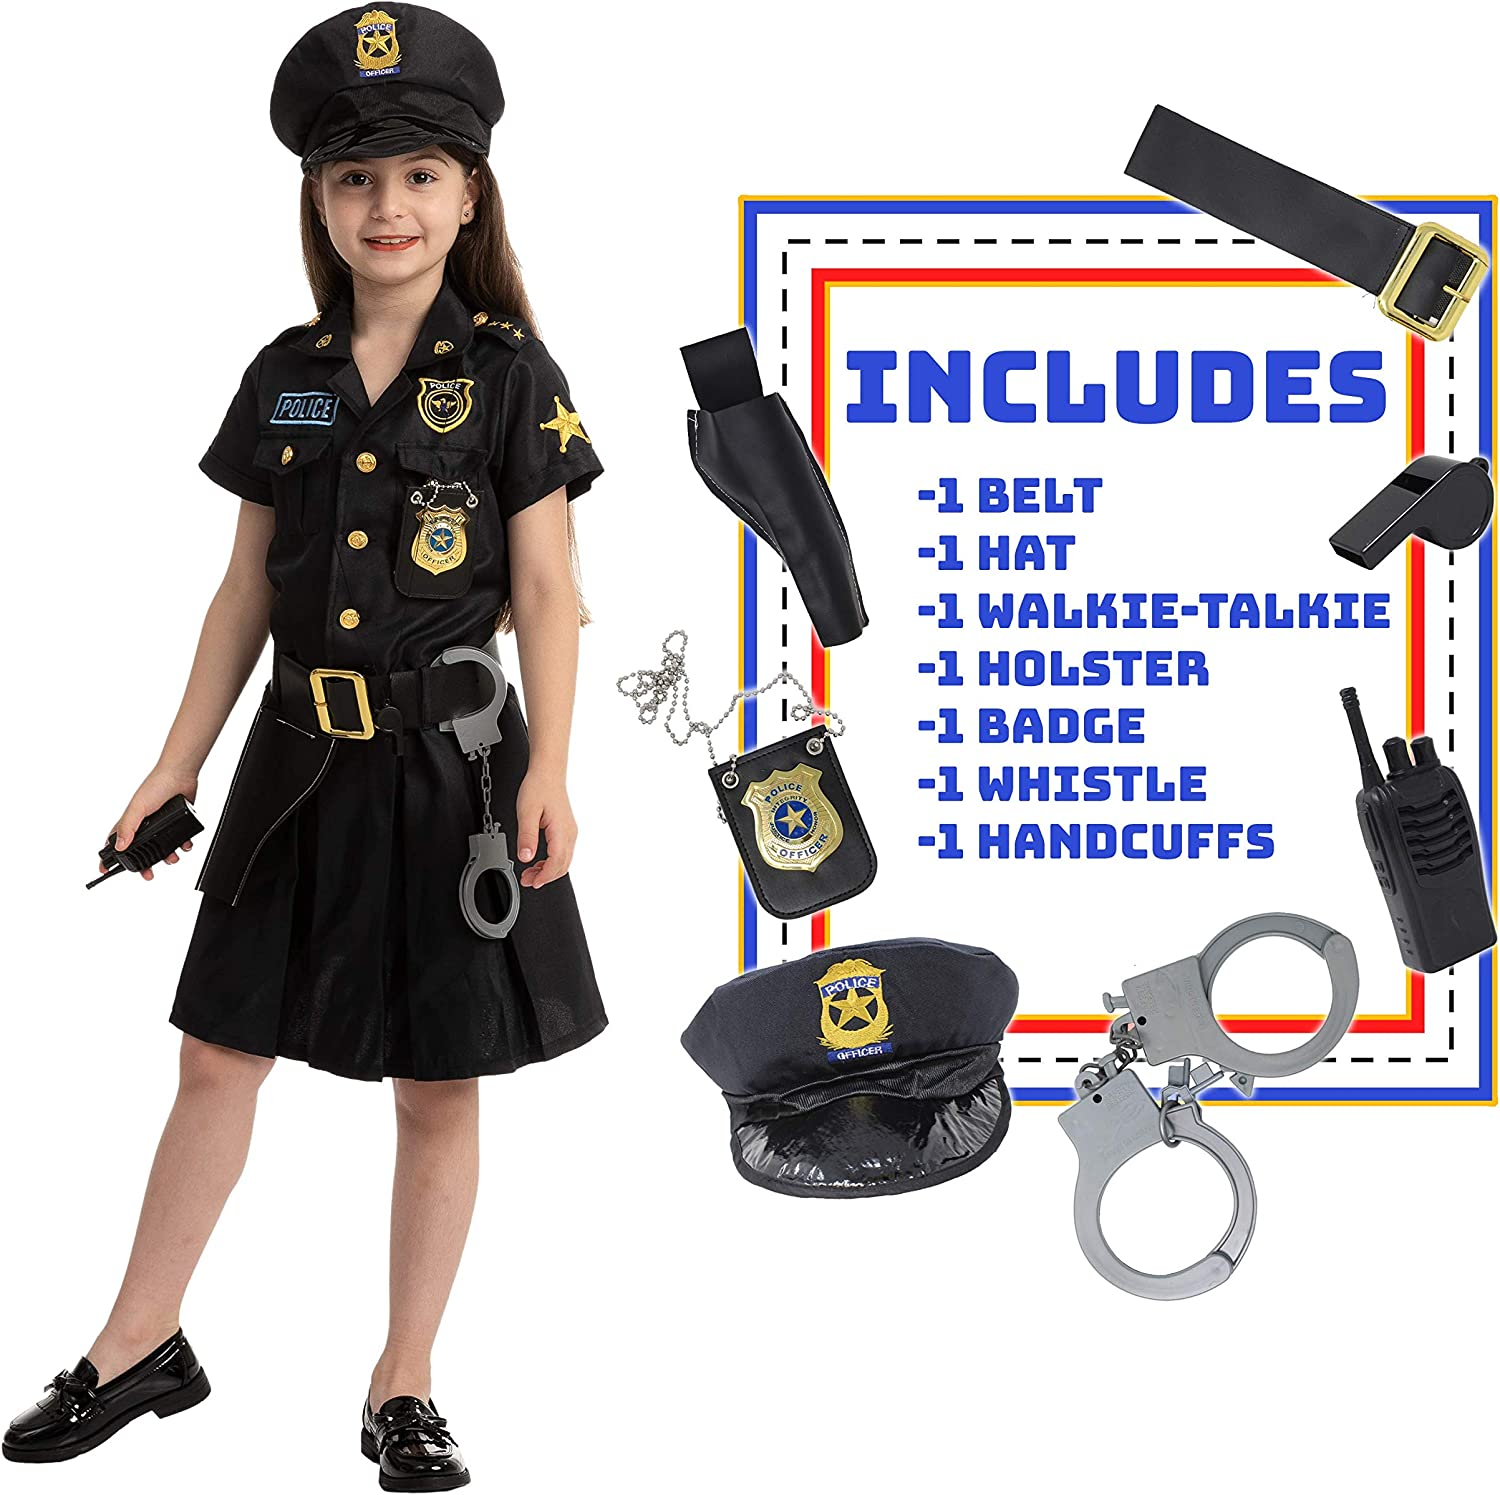 Police Officer Girl Cop Costume Outfit Set for Halloween Dress Up Party, Role-Playing, Carnival Cosplay, Themed Parties